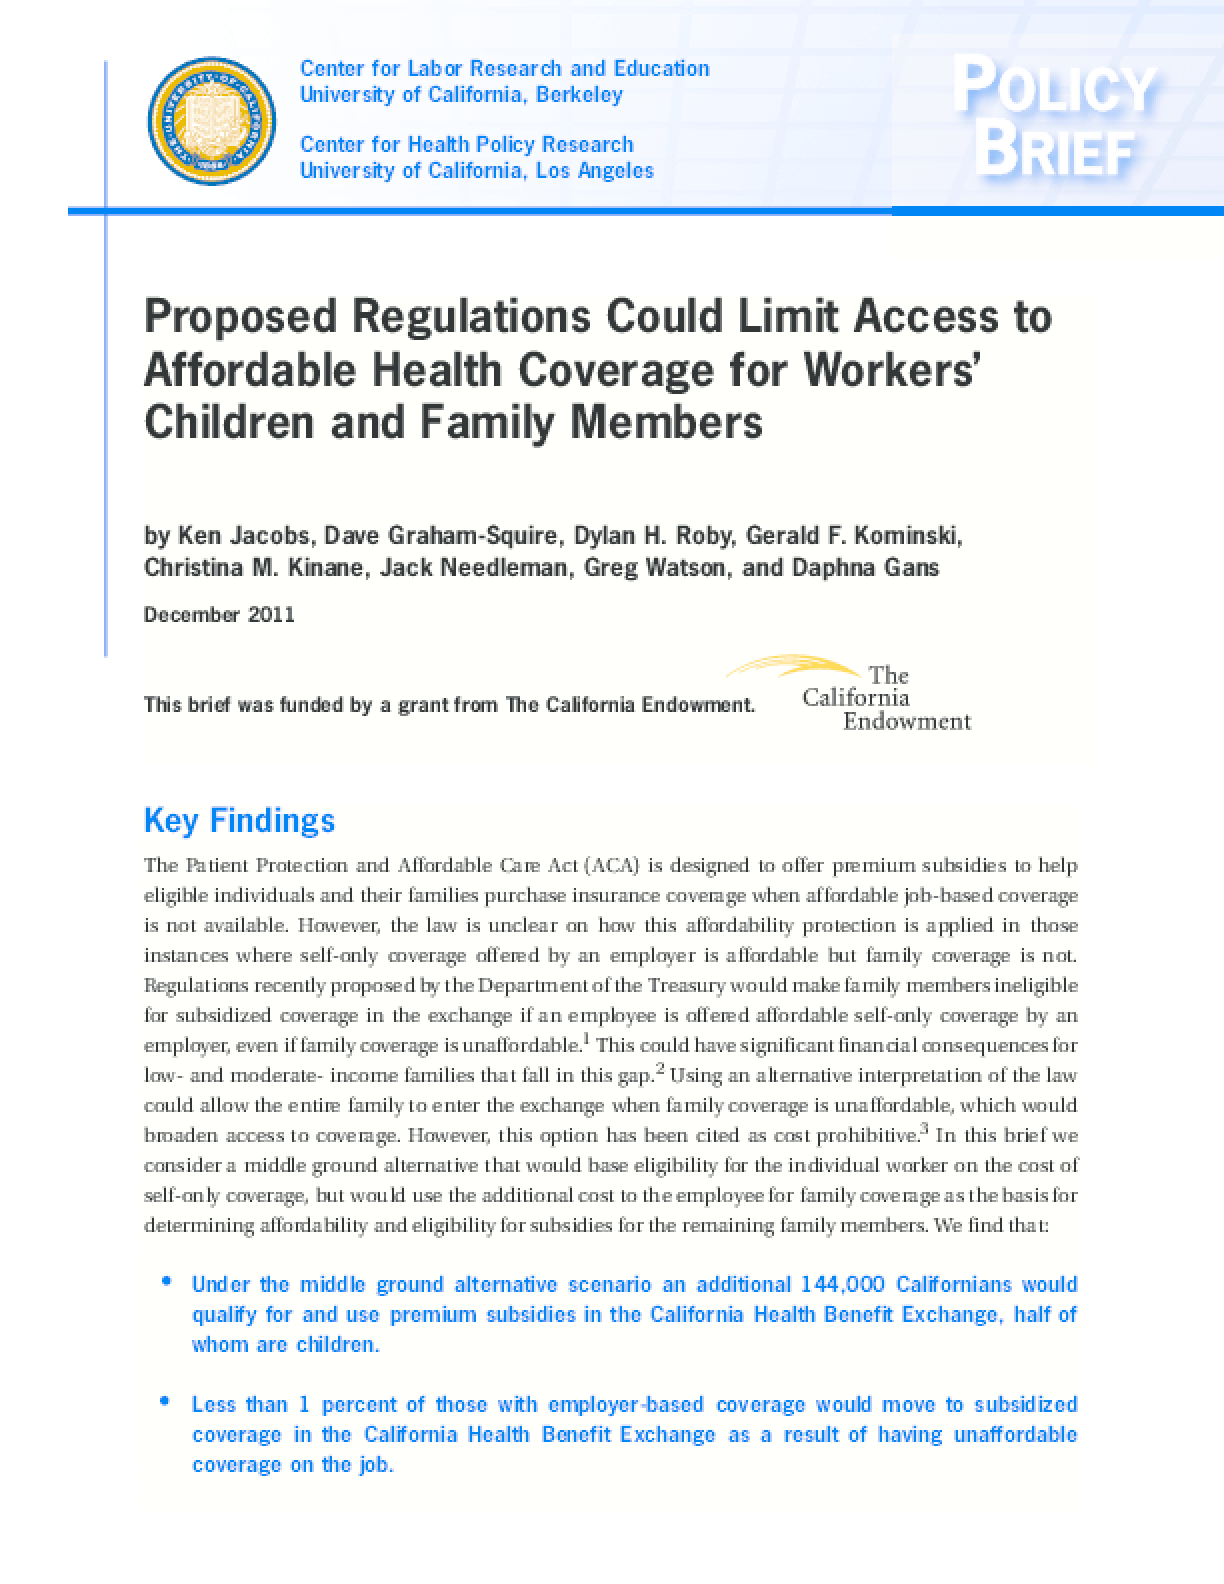 Proposed Regulations Could Limit Access to Affordable Health Coverage for Workers' Children and Family Members